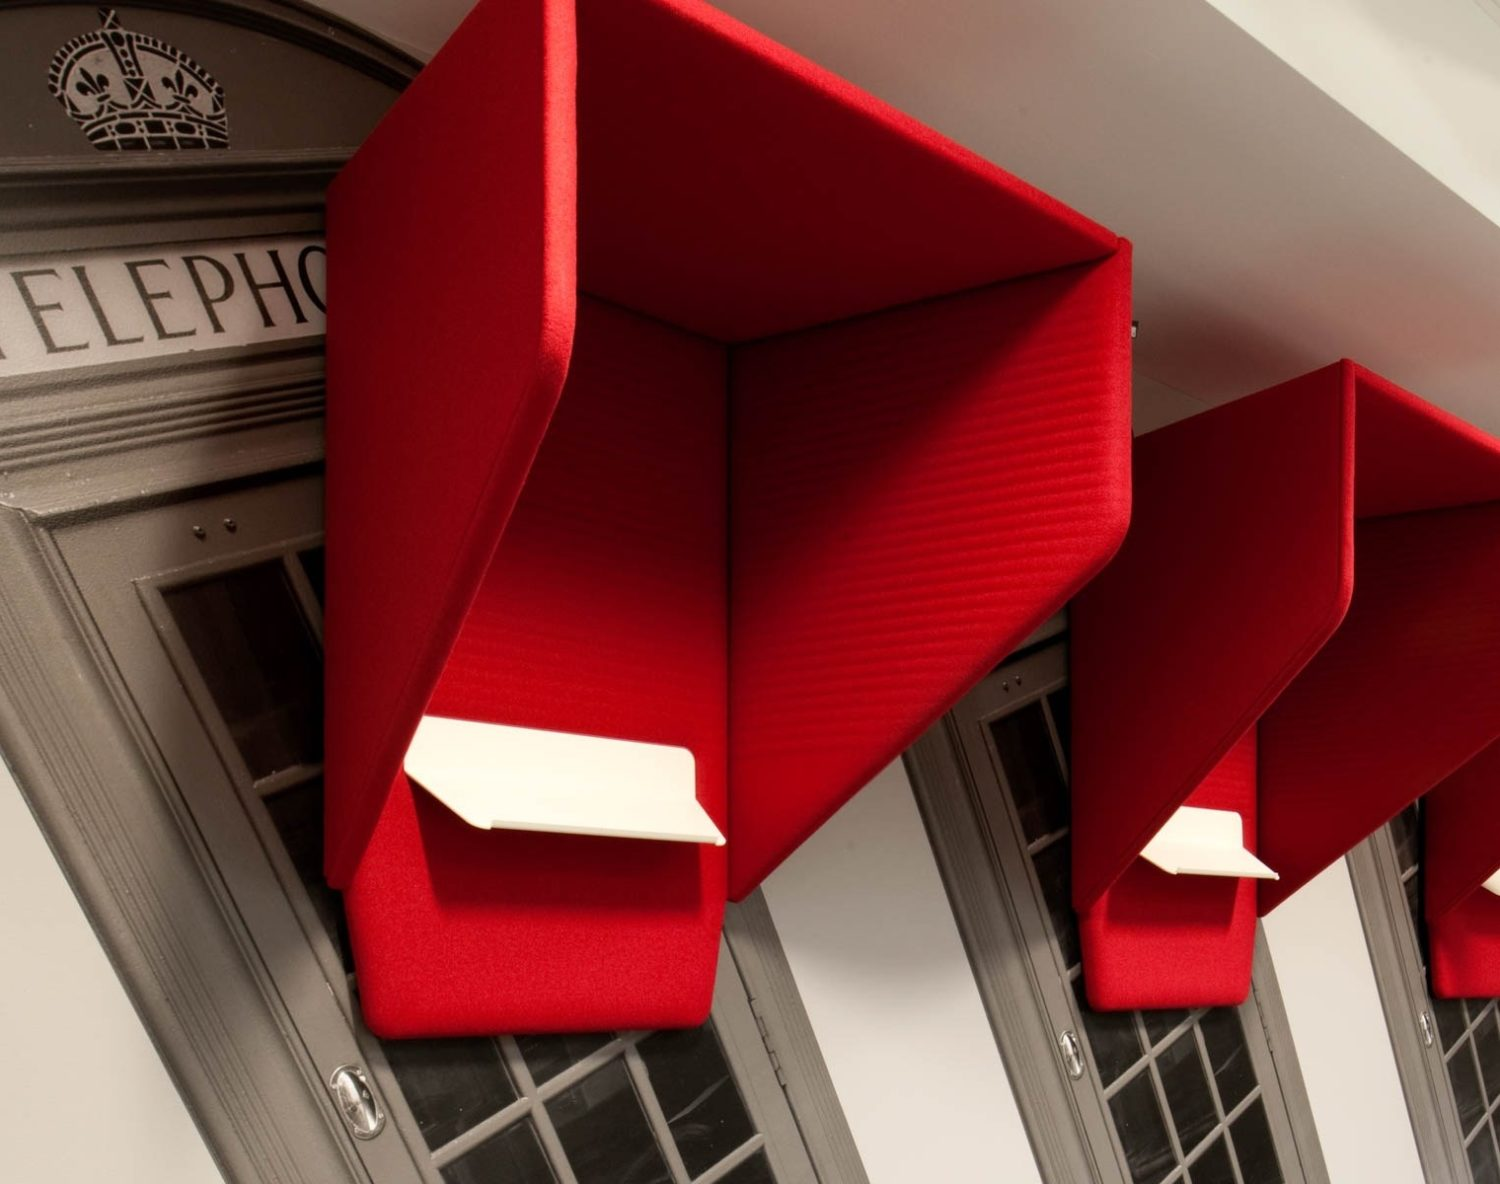 Red office phone booths for privacy